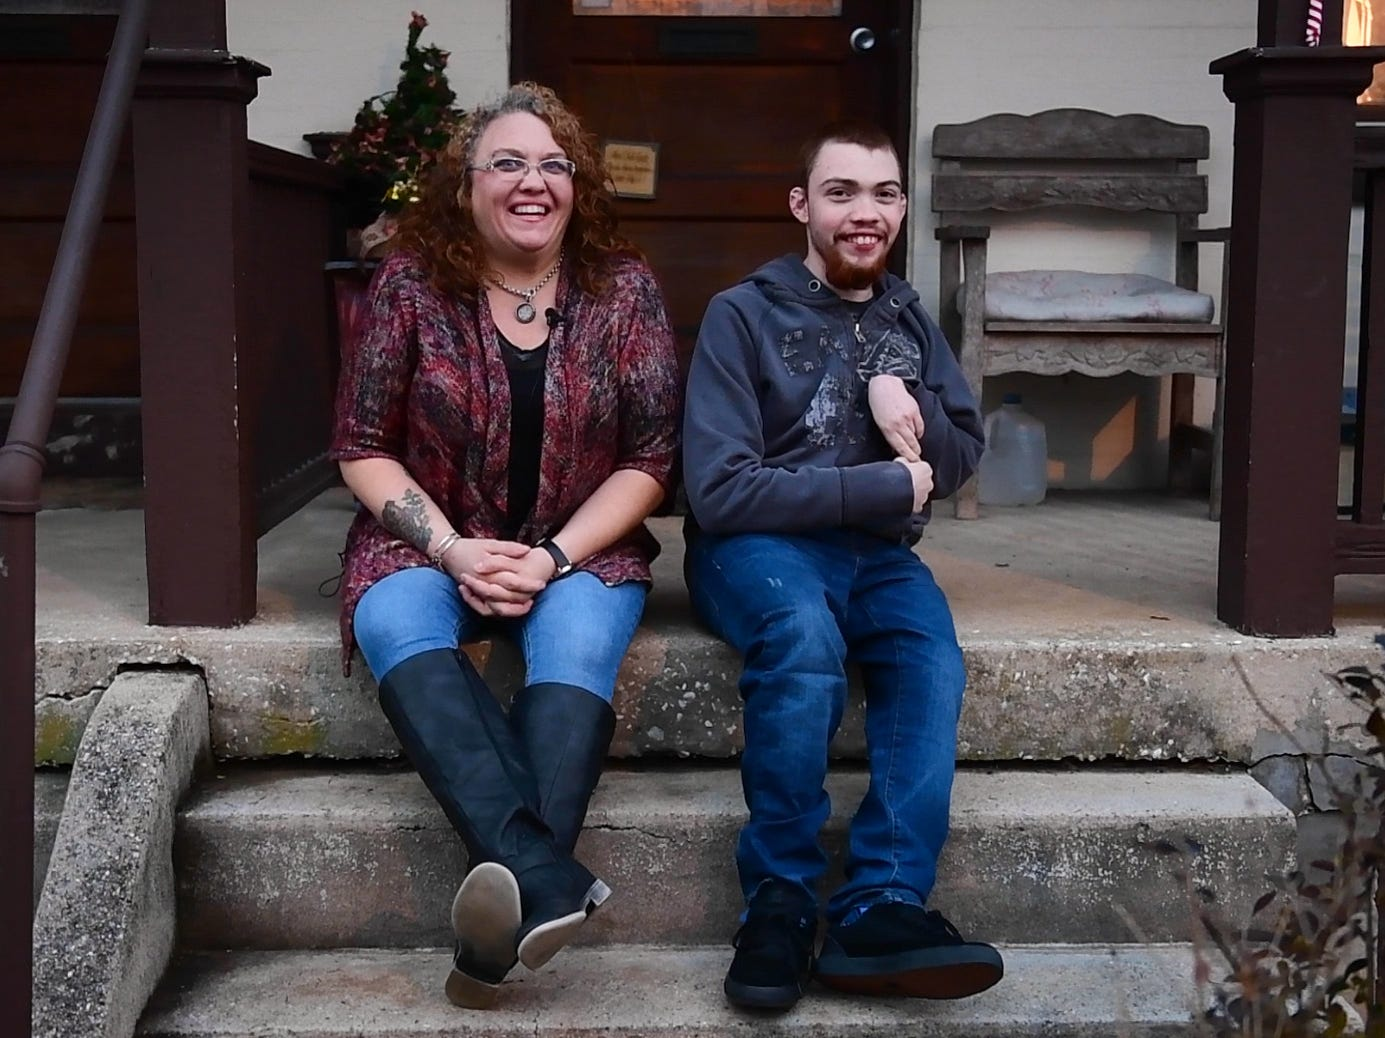 Hunter Leisenring (right) and his mother, Yvette Wertz (left), share the story of Hunter's 16th birthday surprise from their front porch, January, 8, 2019.